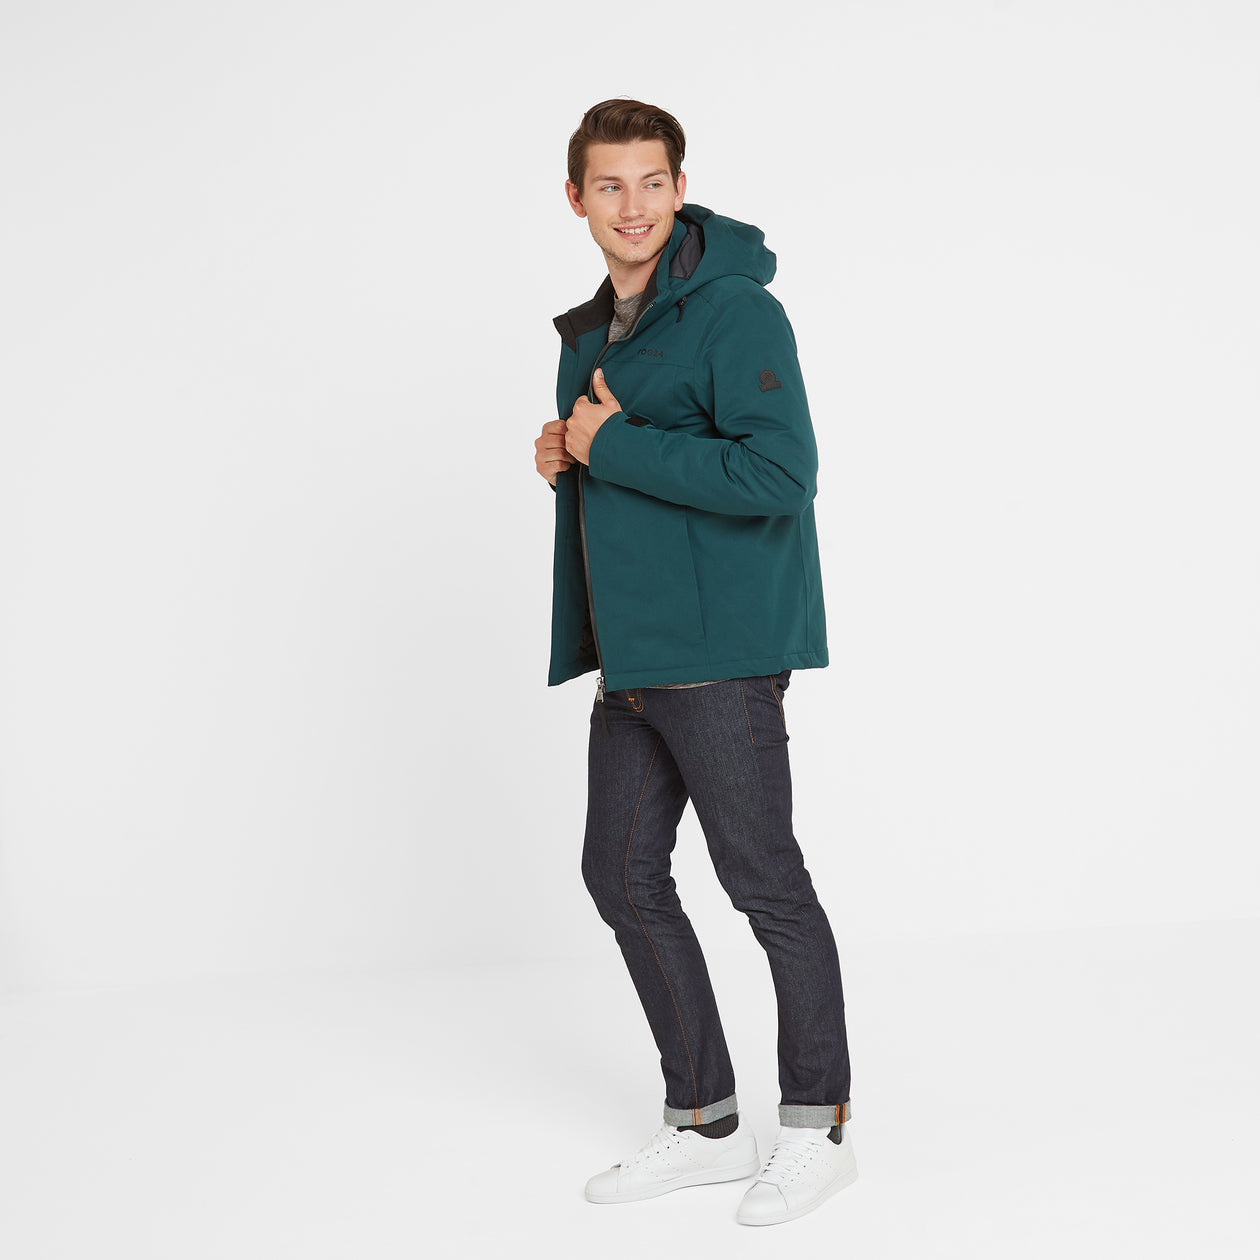 Cawood Mens Winter Jacket - Forest image 4